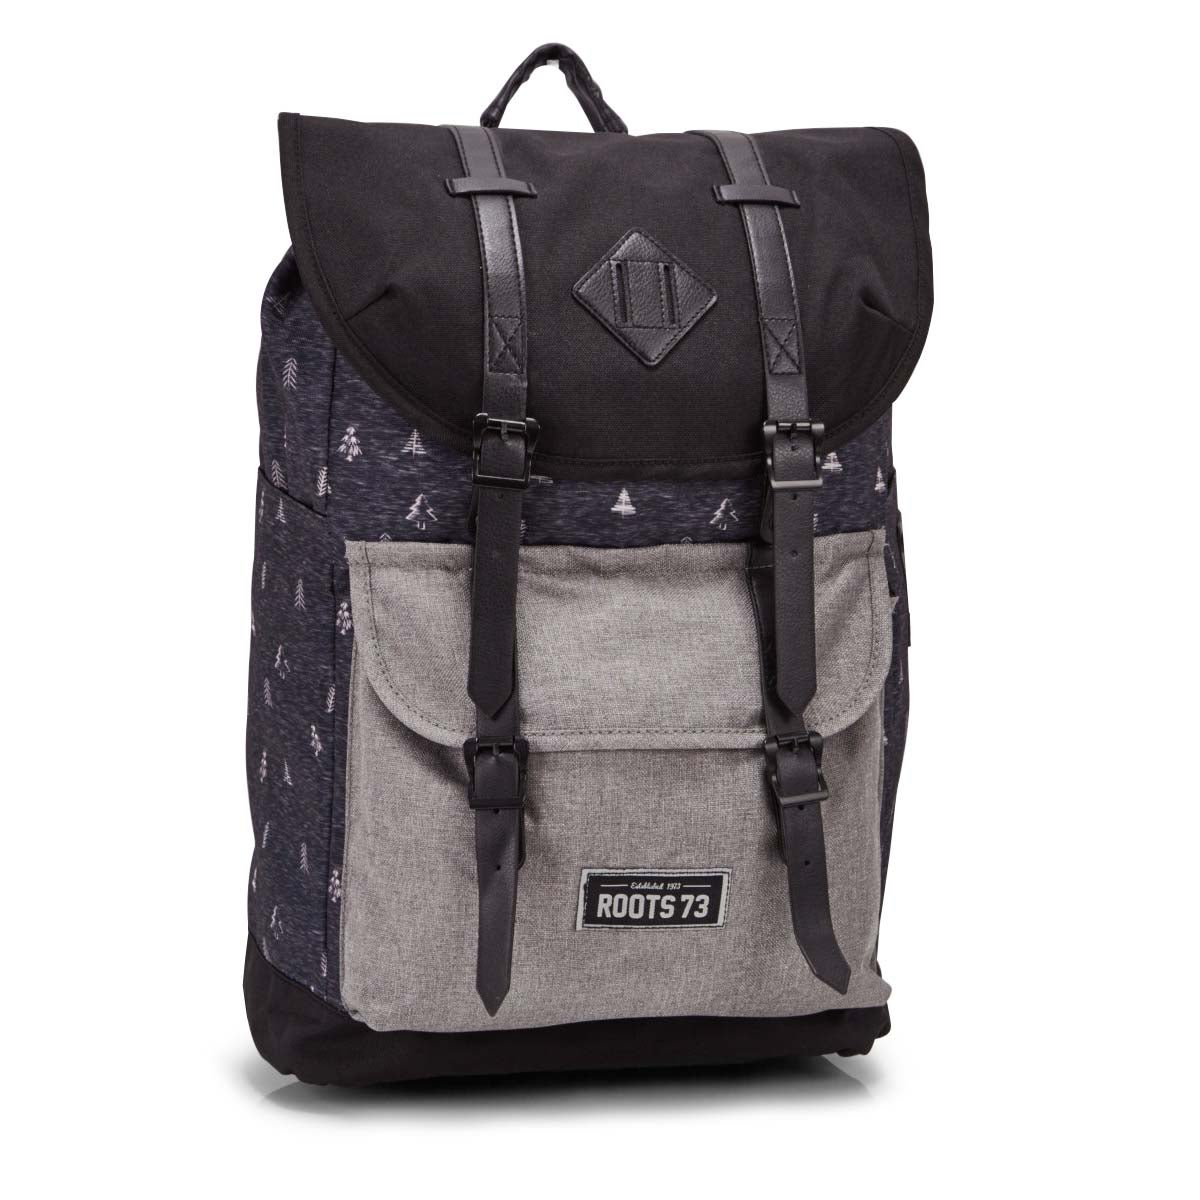 Roots73 grey tree backpack